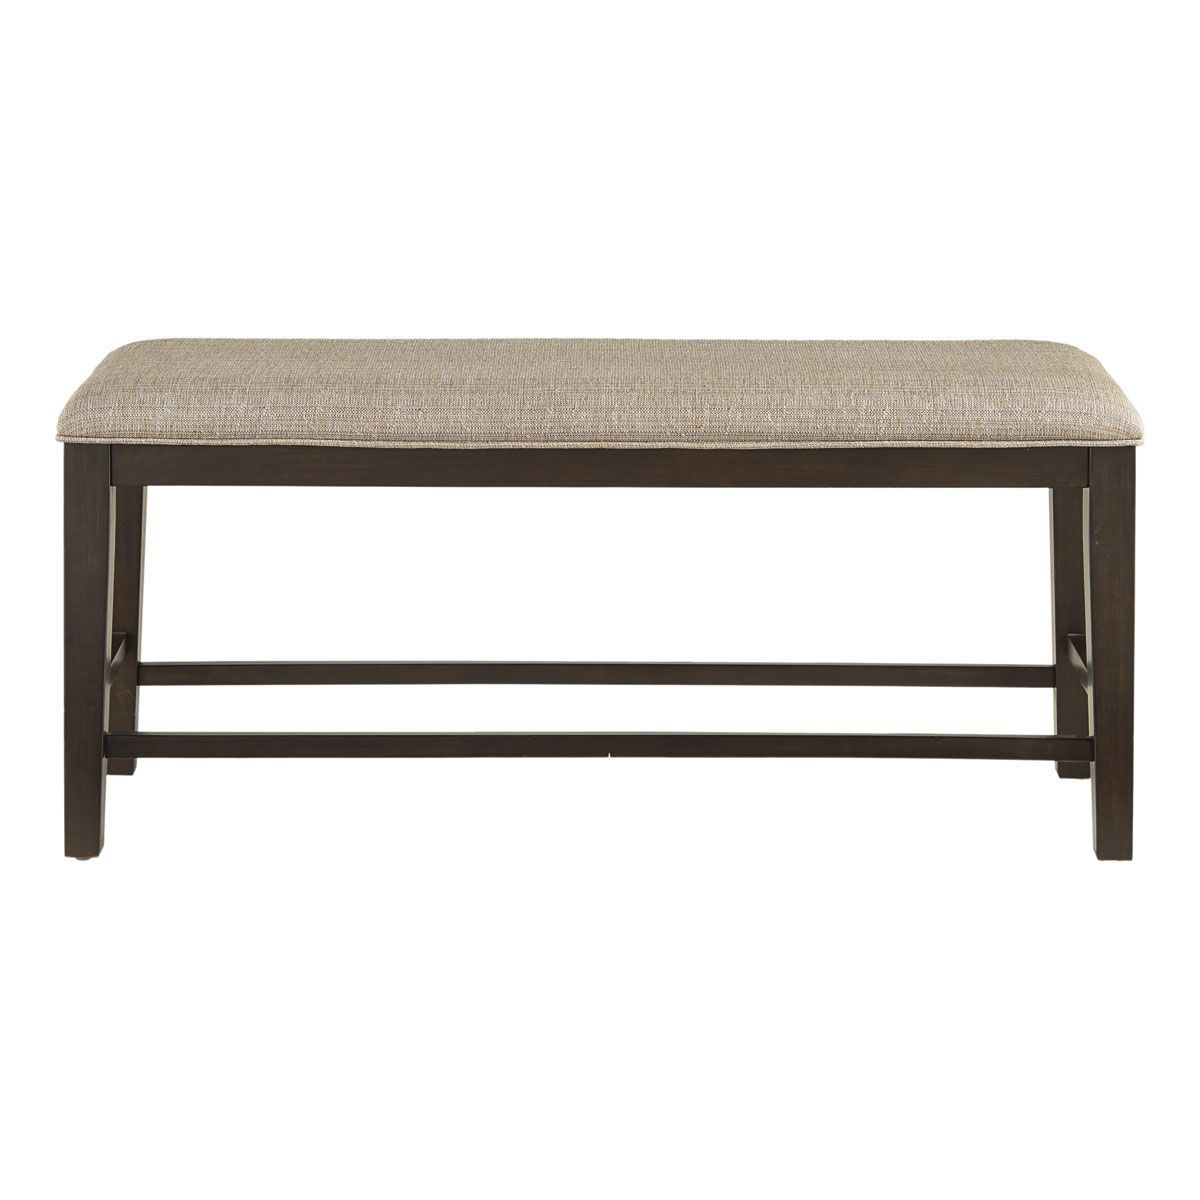 Picture of FITZGERALD COUNTER BENCH